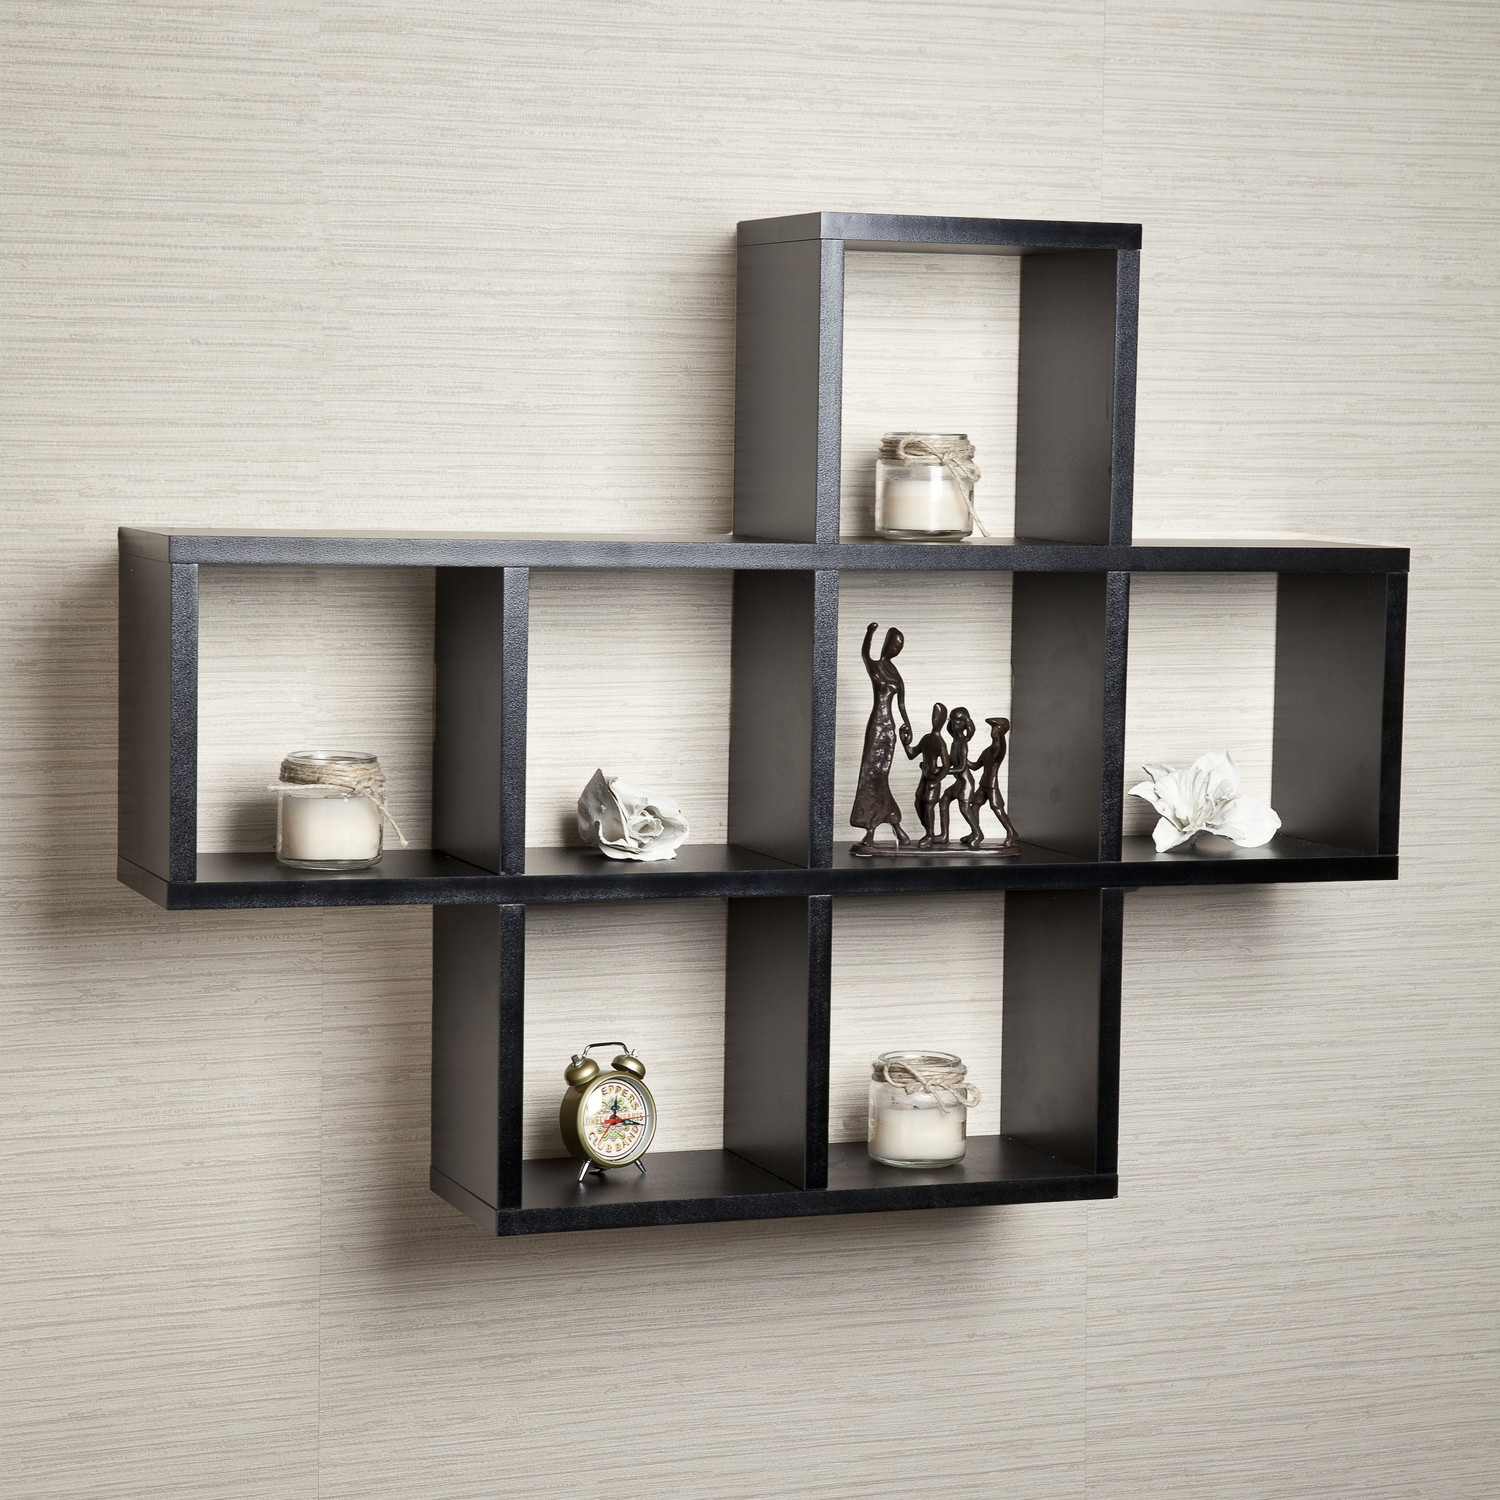 Wall Shelves Design Narrow Wall Shelves For Minimalist Home Decor Within Wall Shelves (Image 12 of 15)